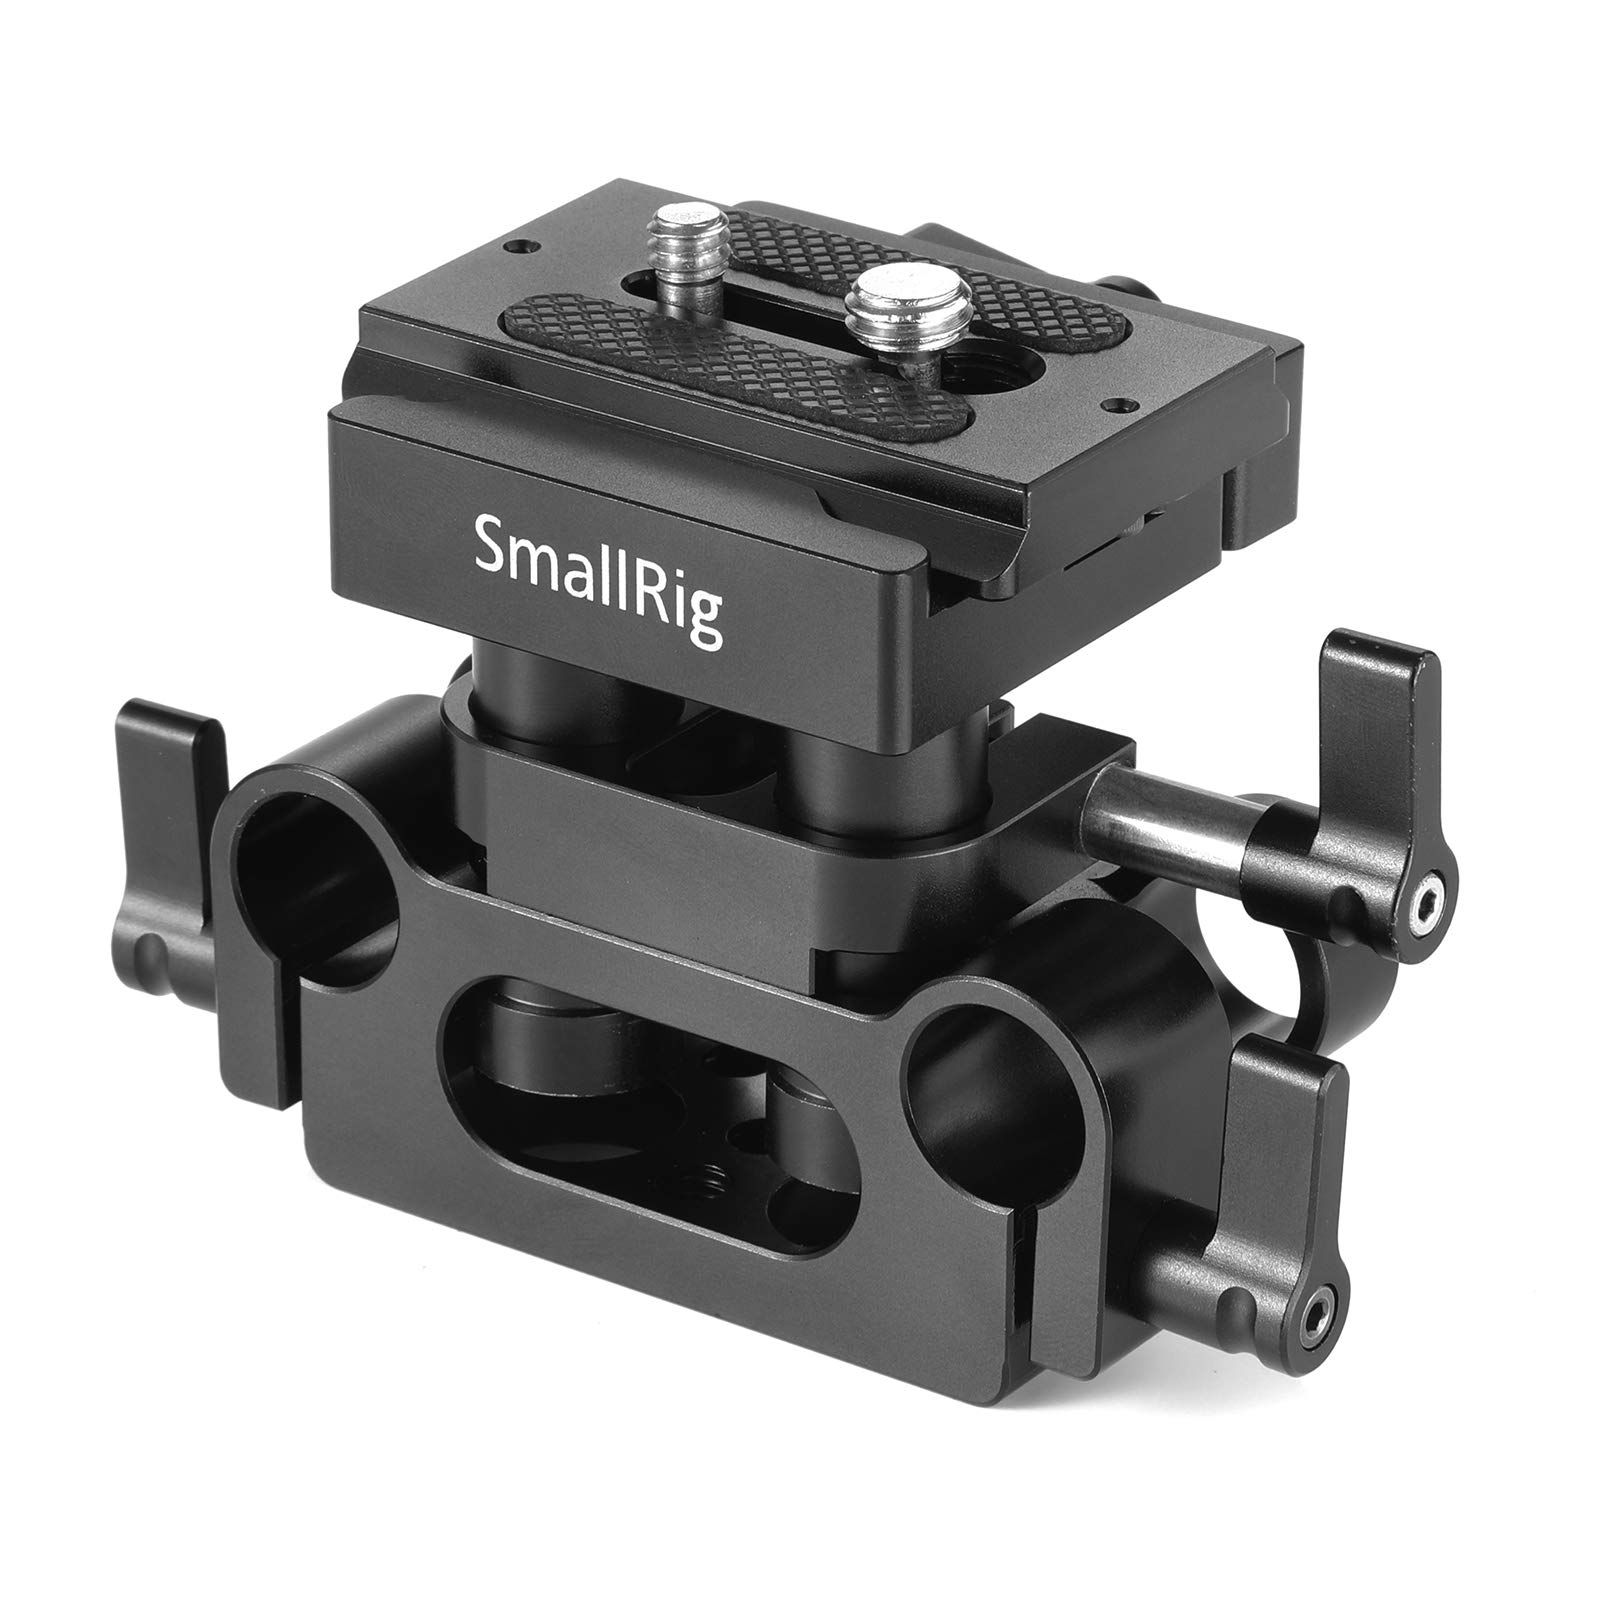 SMALLRIG Universal 15mm Rail Support System with 15mm Rod Clamp and Quick Release Plate - 2272 by SMALLRIG